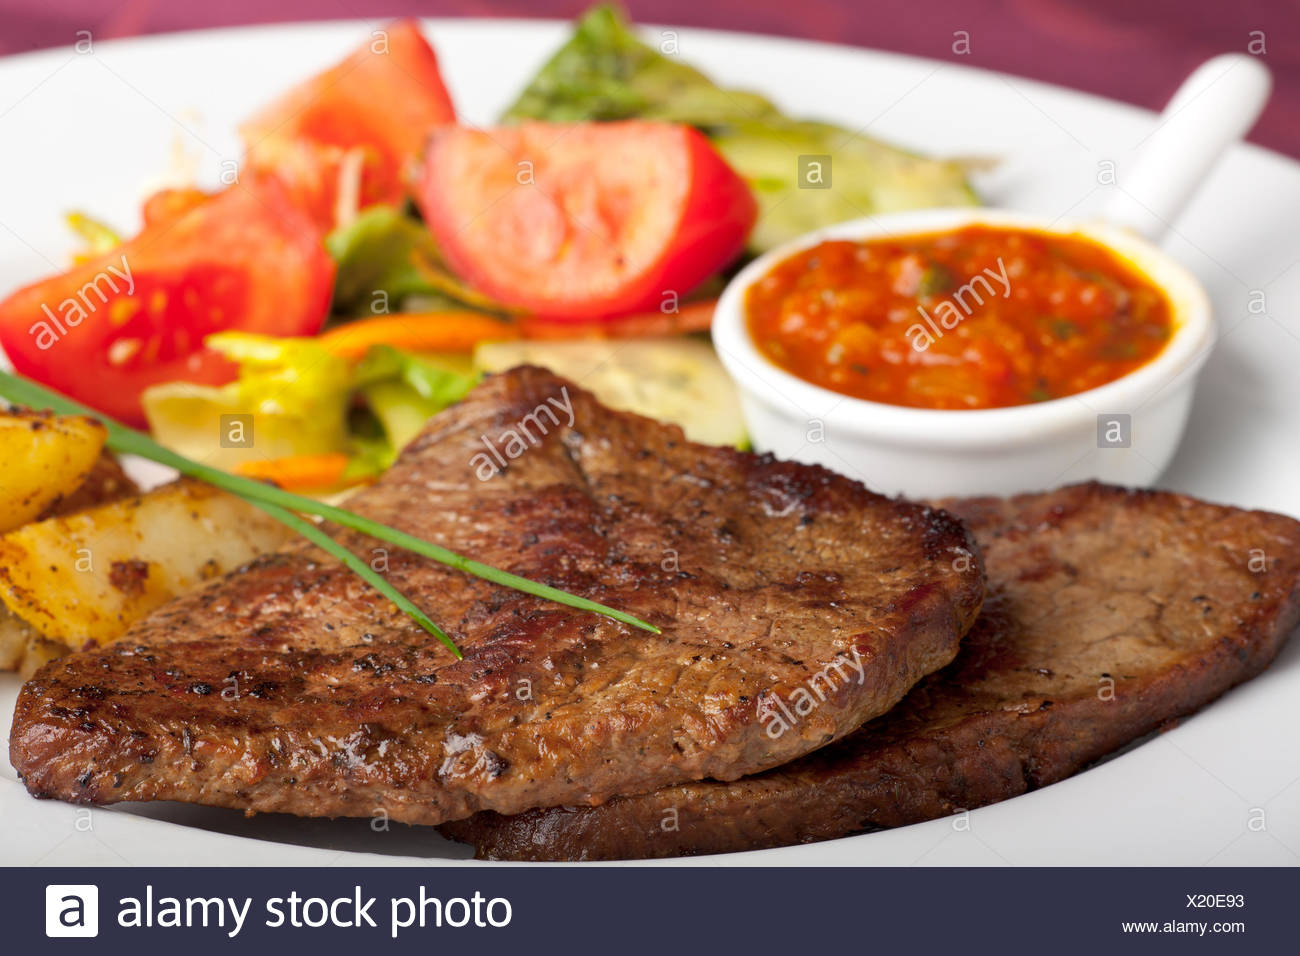 steak with ketchup and potatoes - Stock Image